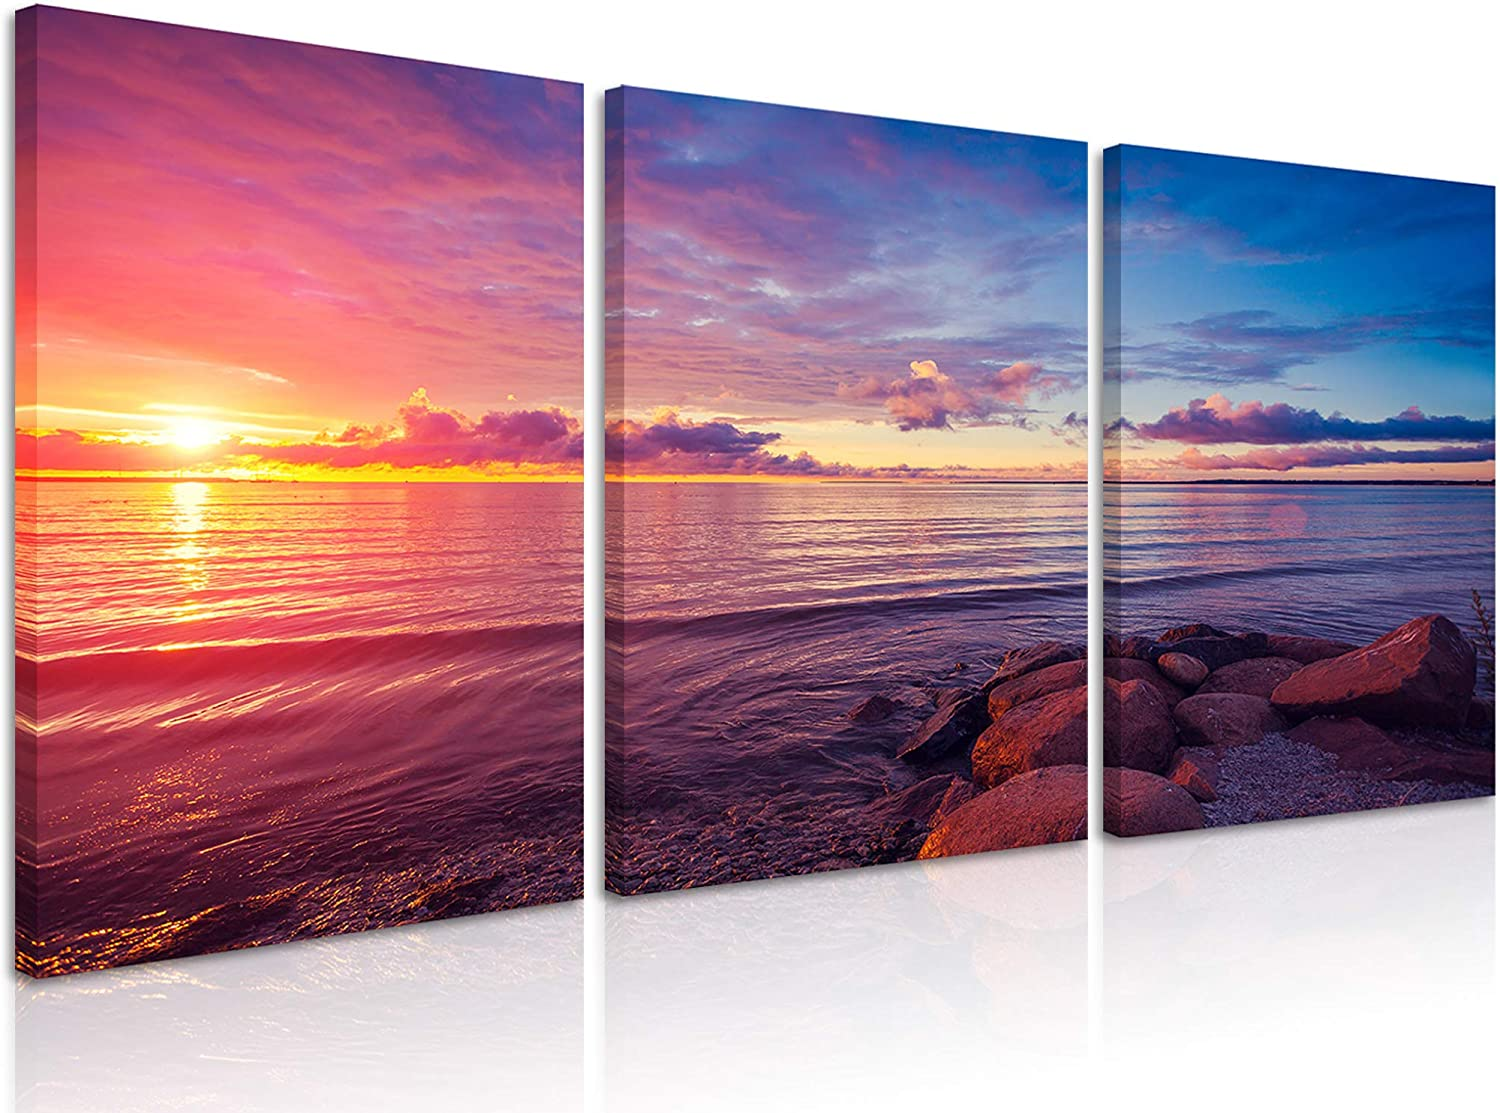 Natural art Modern Stretched and Framed Red Sky Pictures Paintings Contemporary Large Canvas Art Prints Wall Art for Home Decor Ready to Hang, 3 Panels